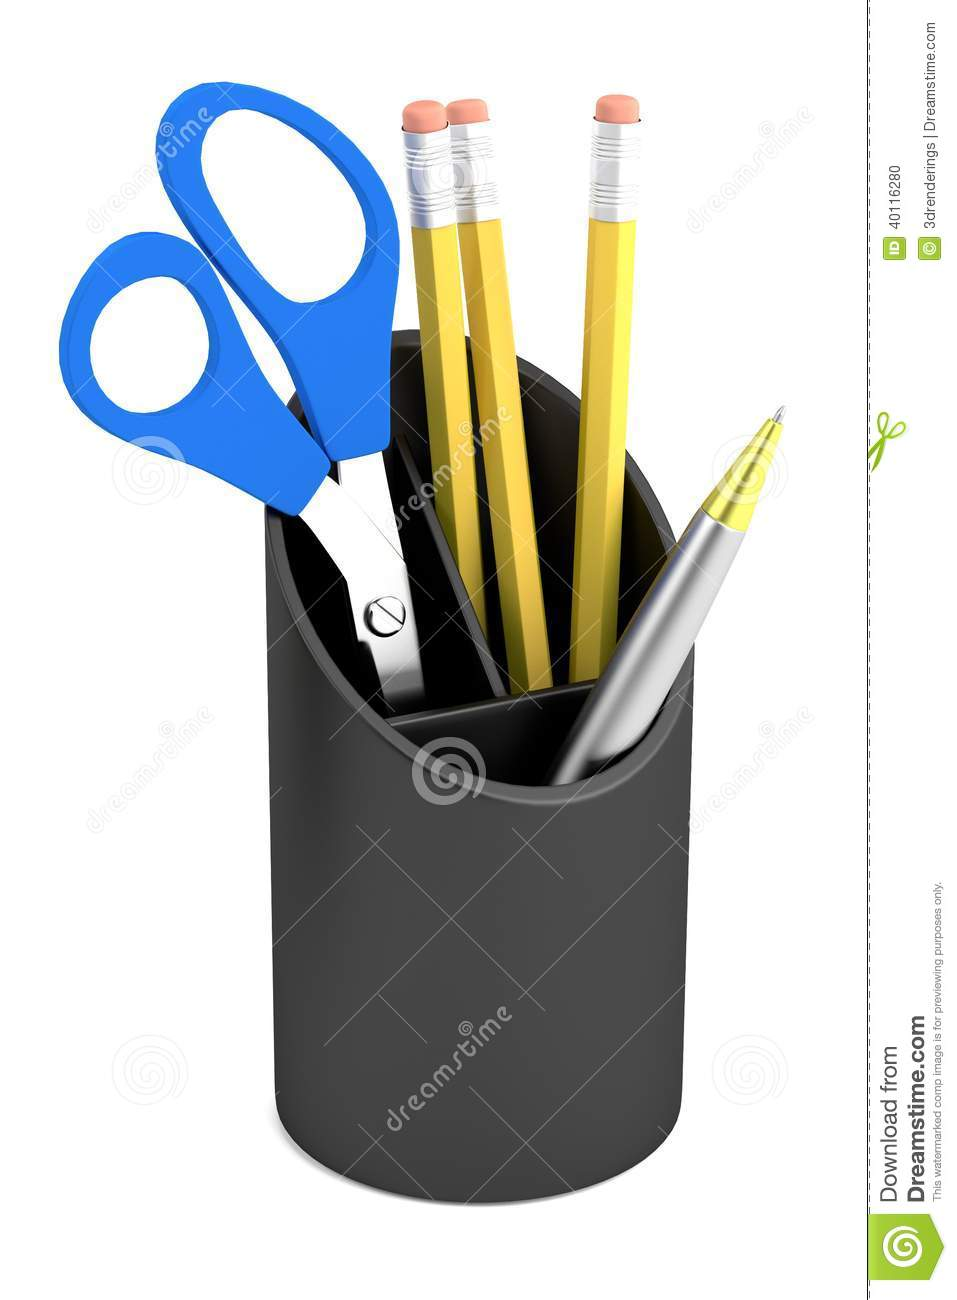 3d Render Of Stationery Tool Cup Stock Illustration